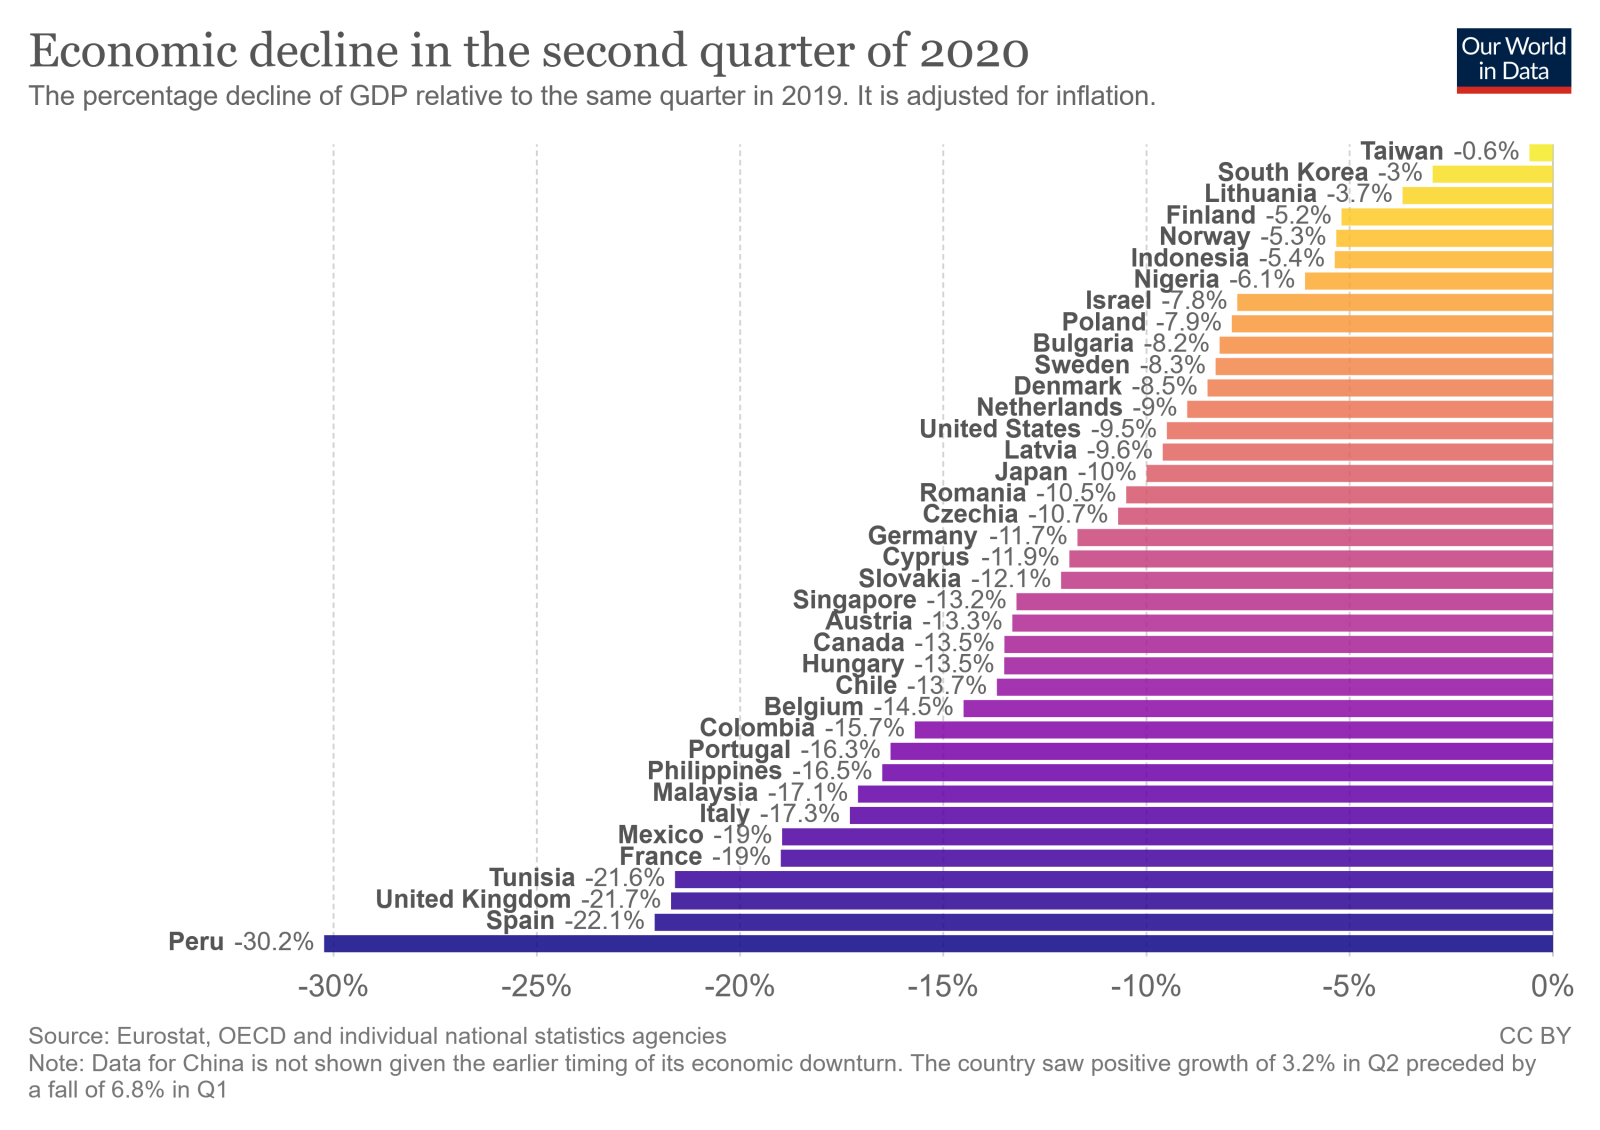 economic-decline-in-the-second-quarter-of-2020.png